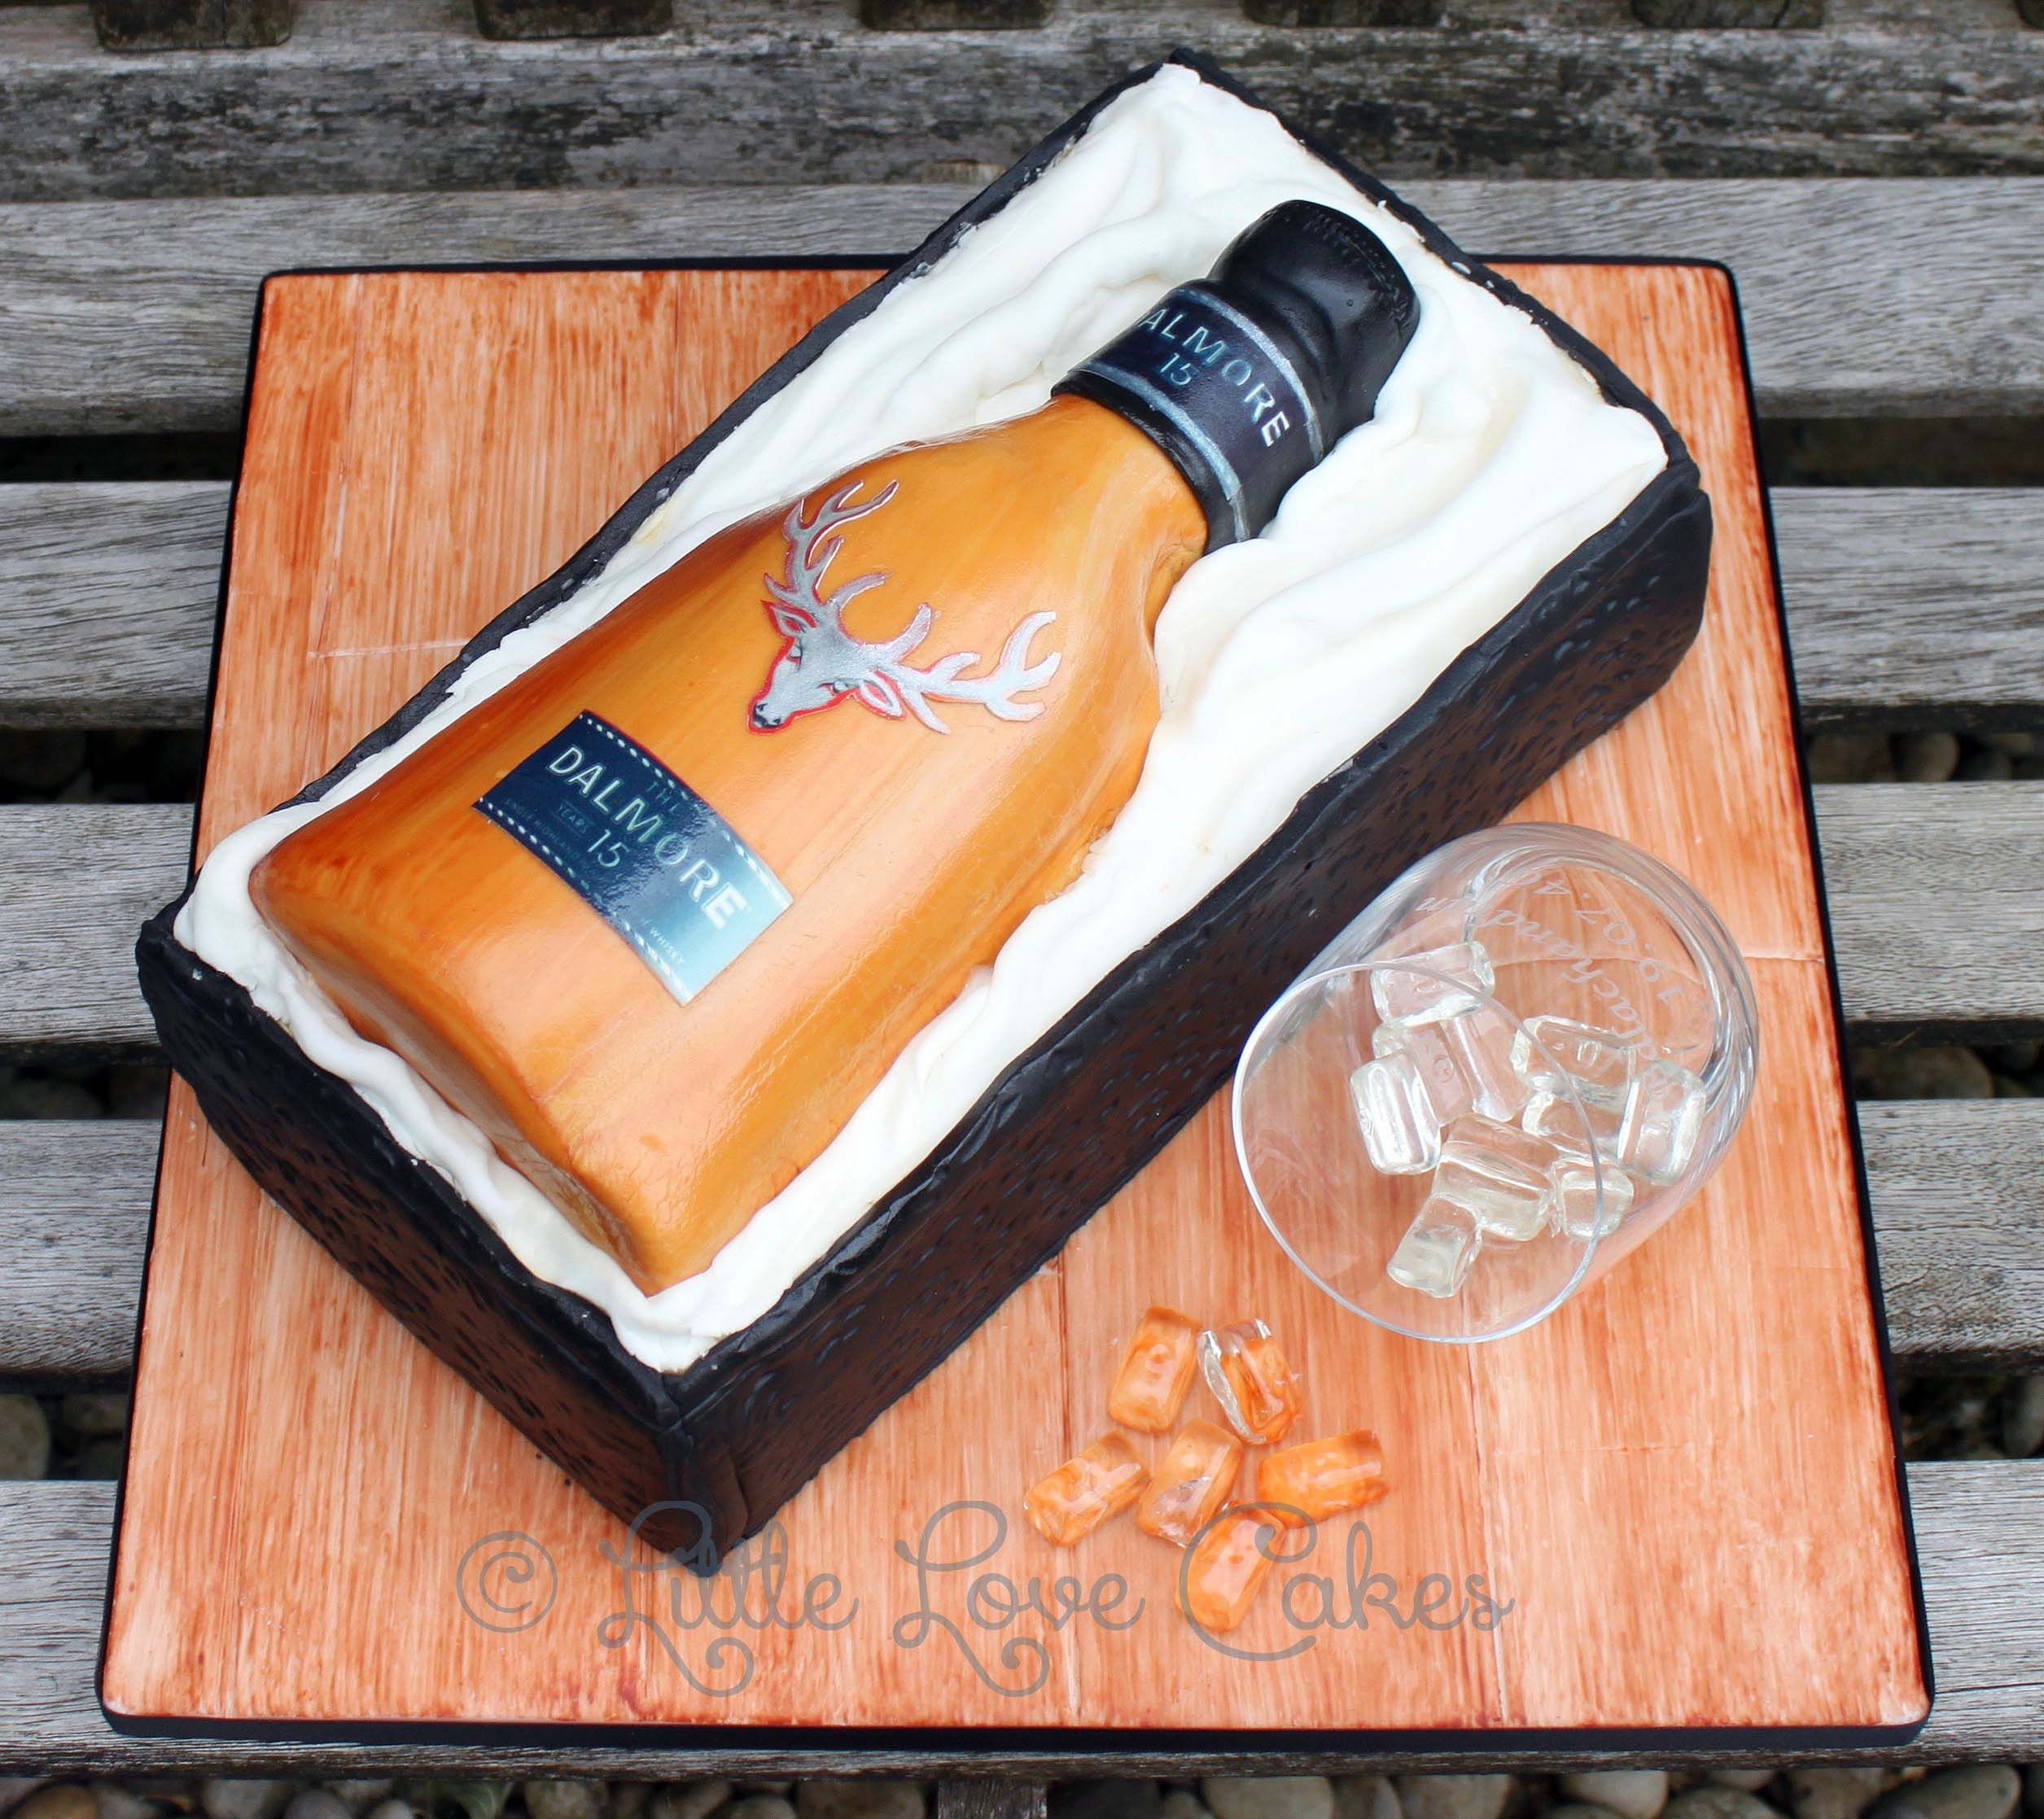 Dalmore Whisky Bottle In Box Cake 35th Birthday Cakes For Him Daddy